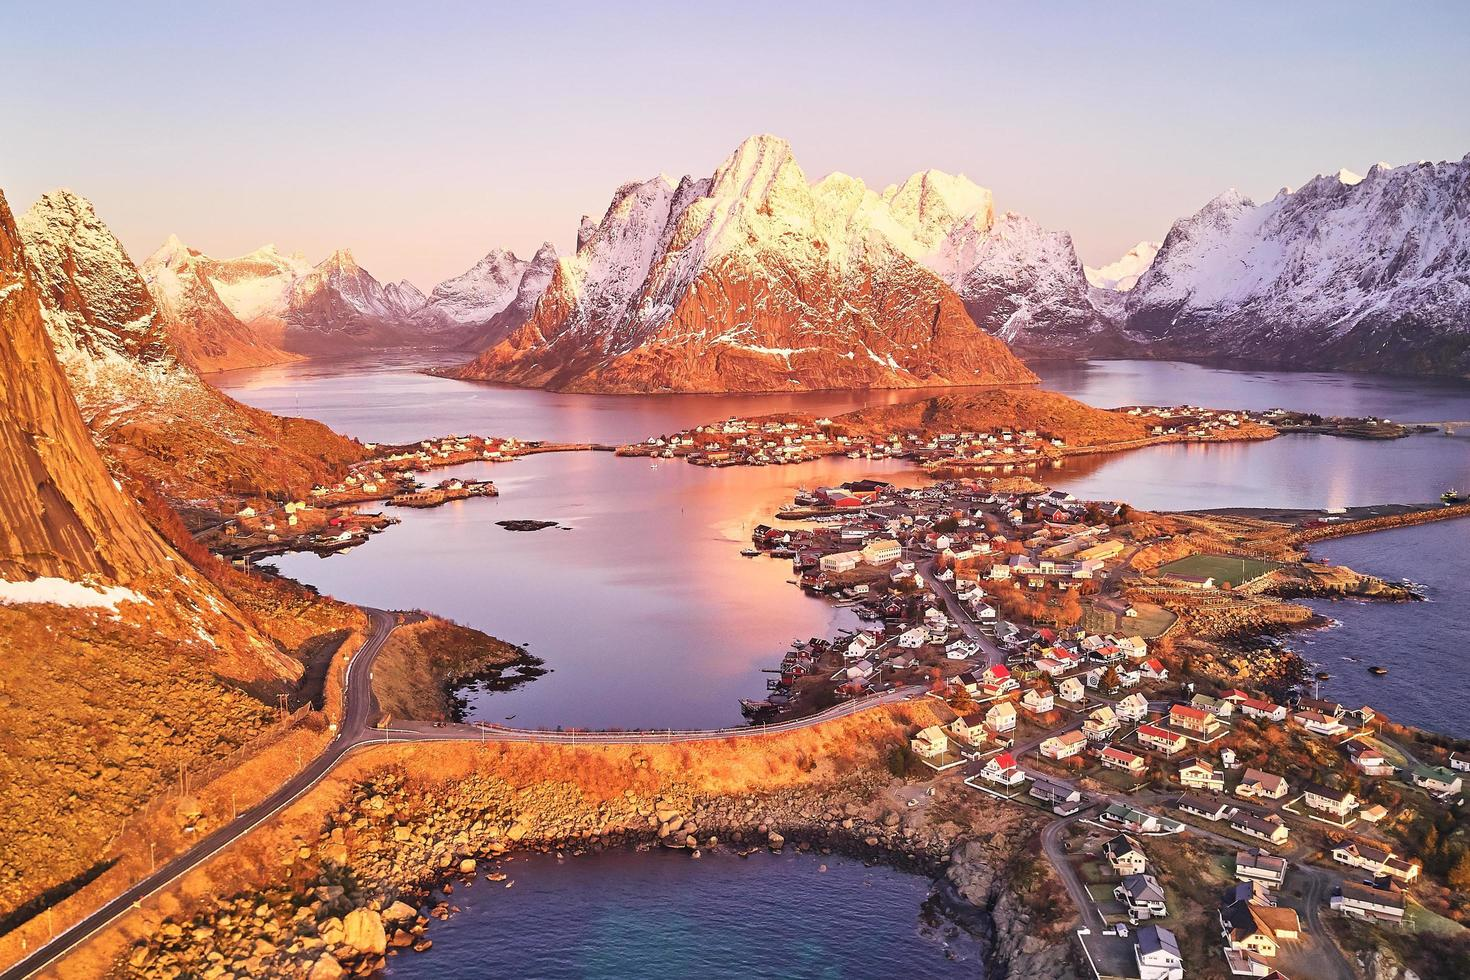 Small village surrounded by water and mountains photo